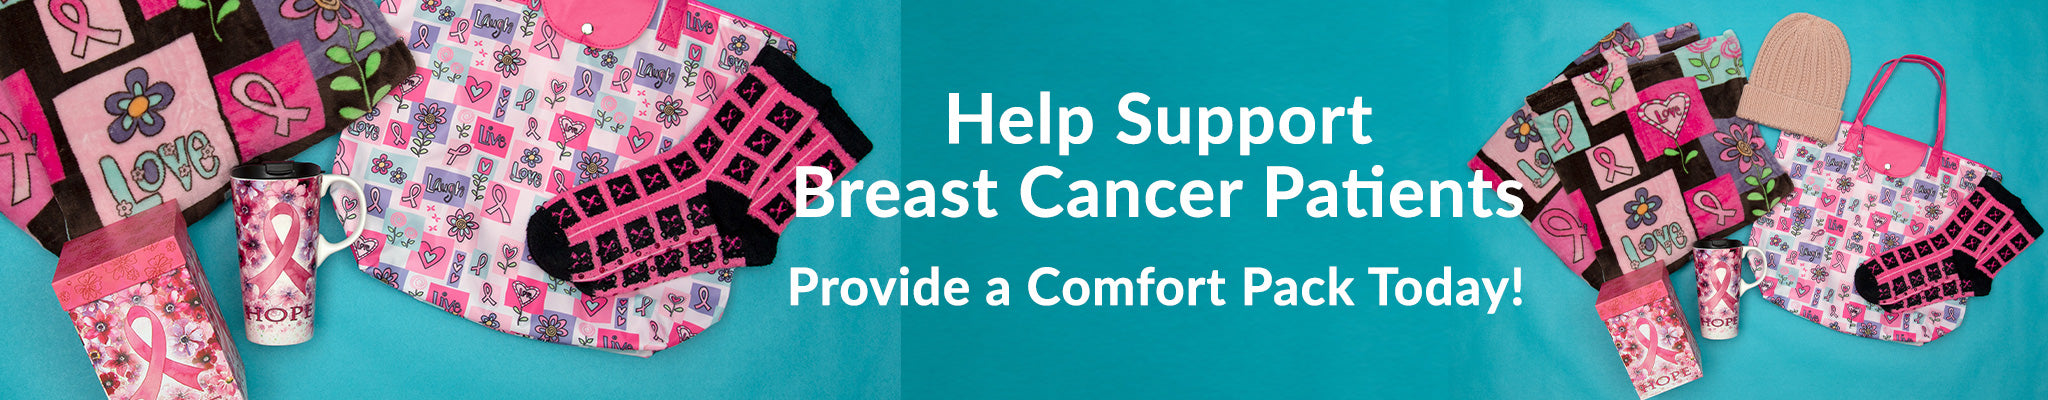 Help Support Breast Cancer Patients | Provide a Comfort Pack Today!